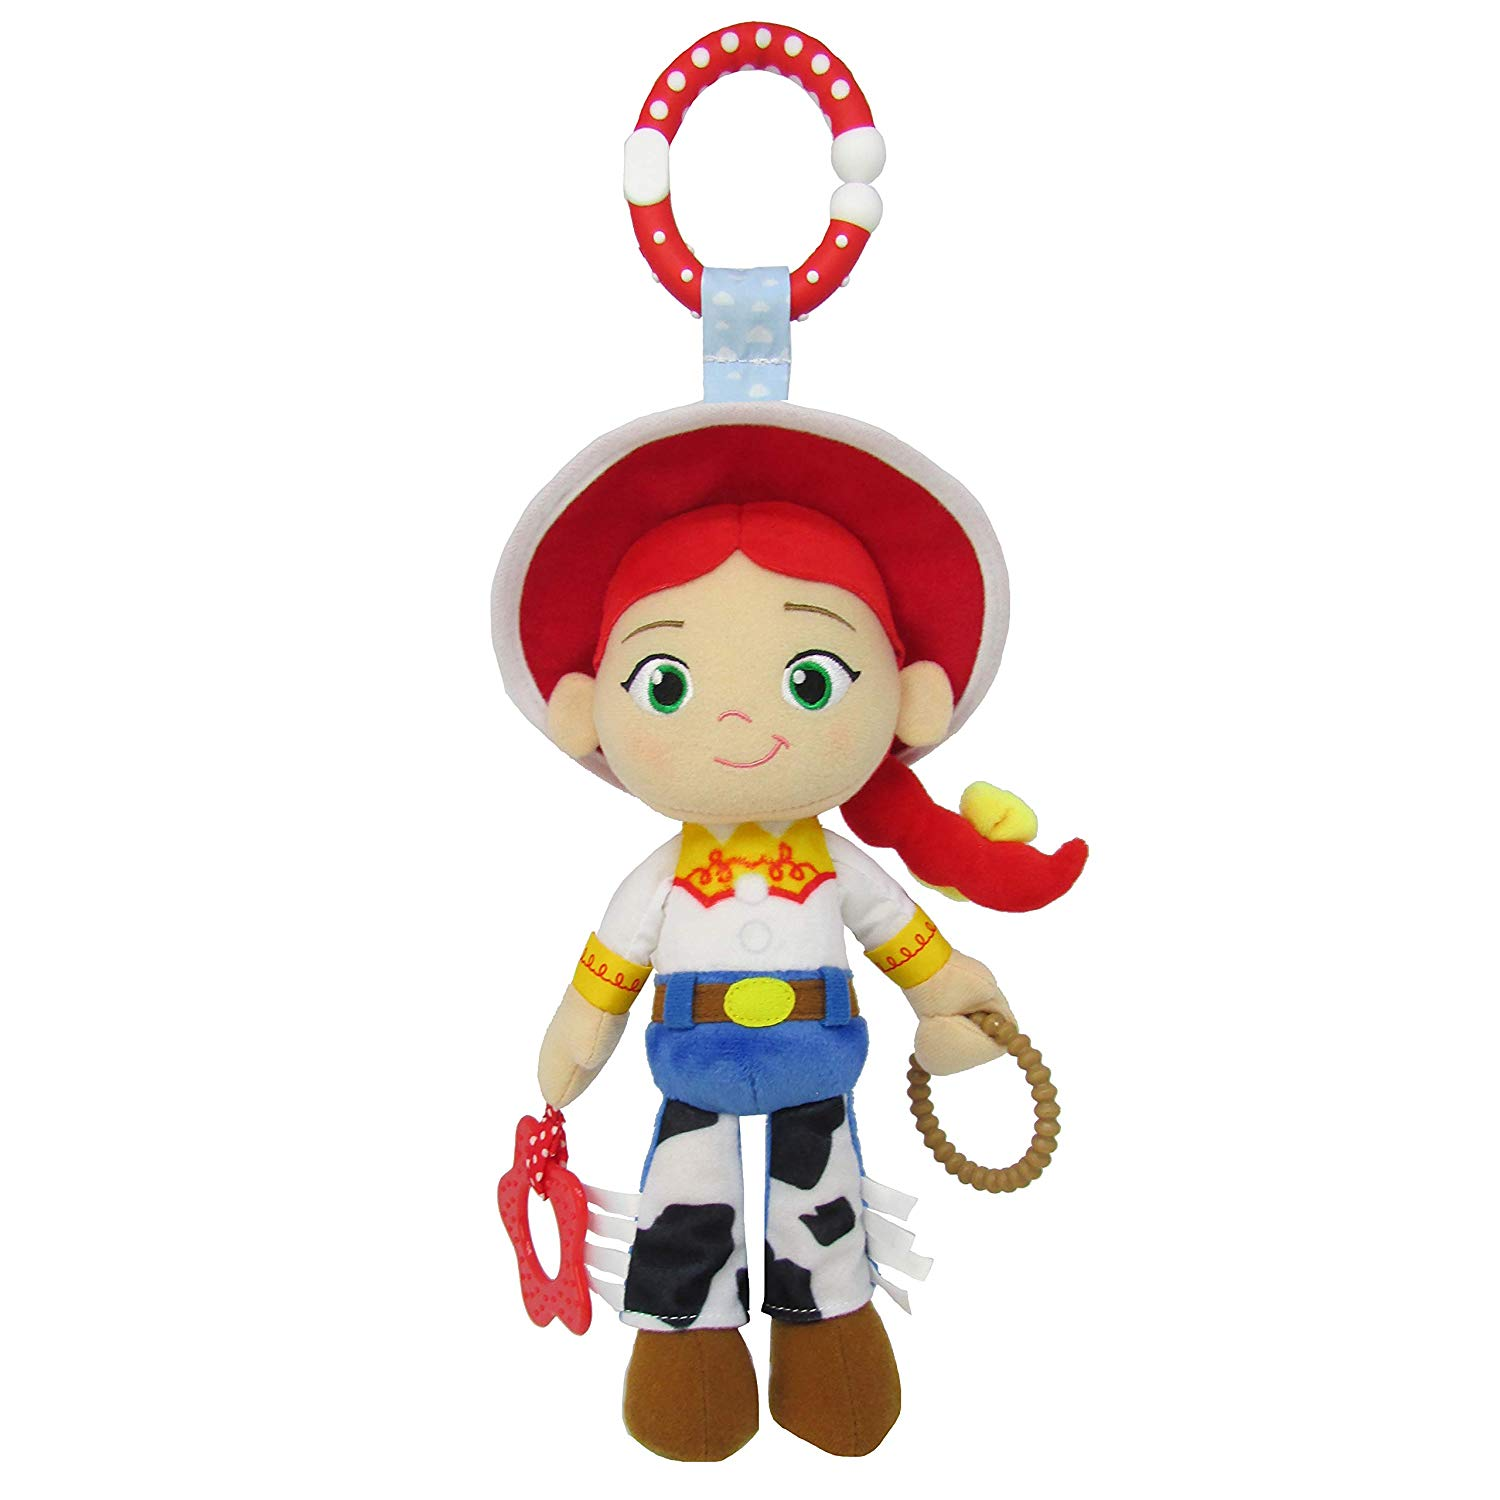 Toy Story Disney Baby Jessie Activity Baby Toy